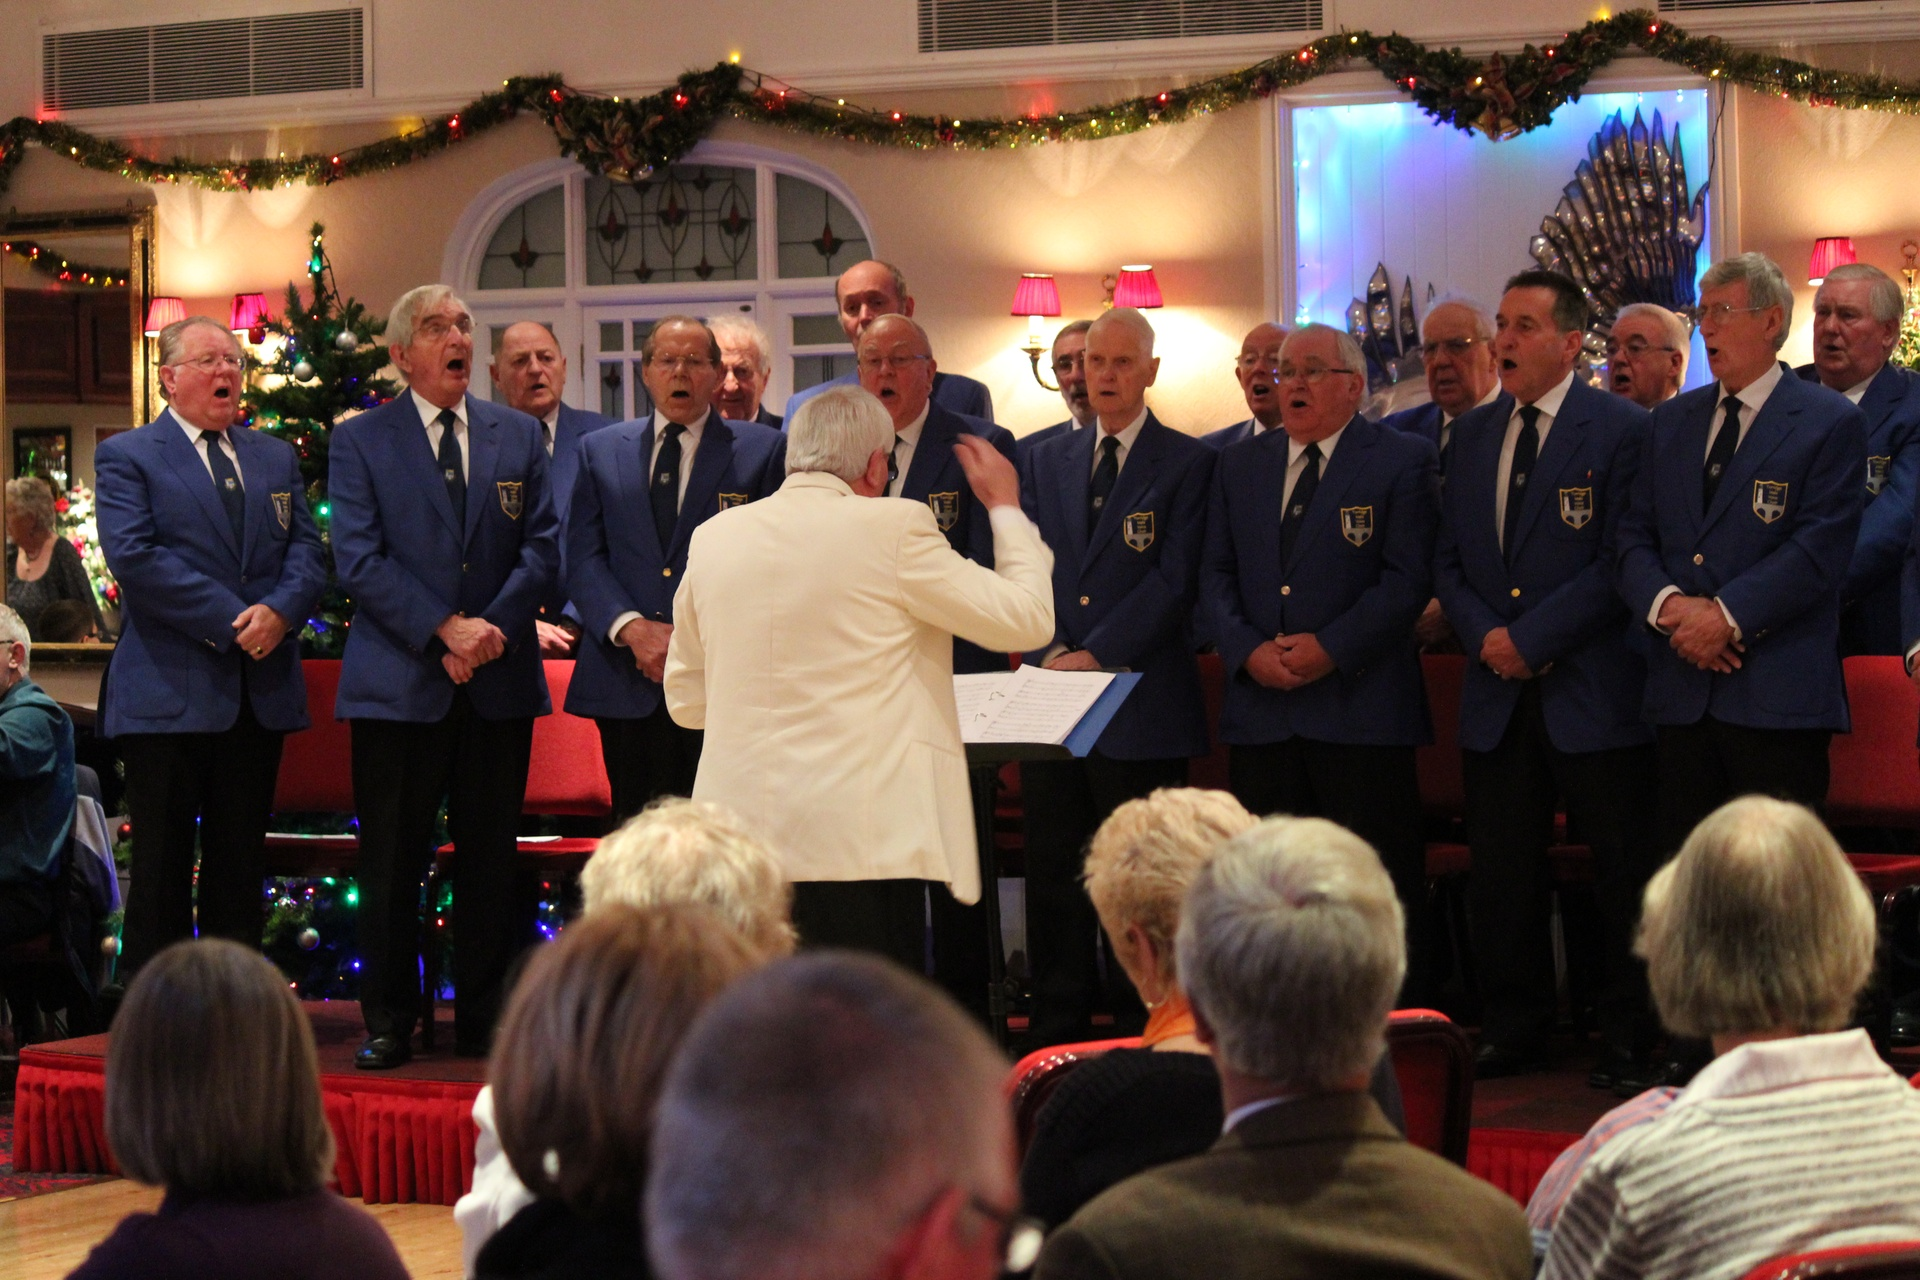 Torridge Male Voice Choir